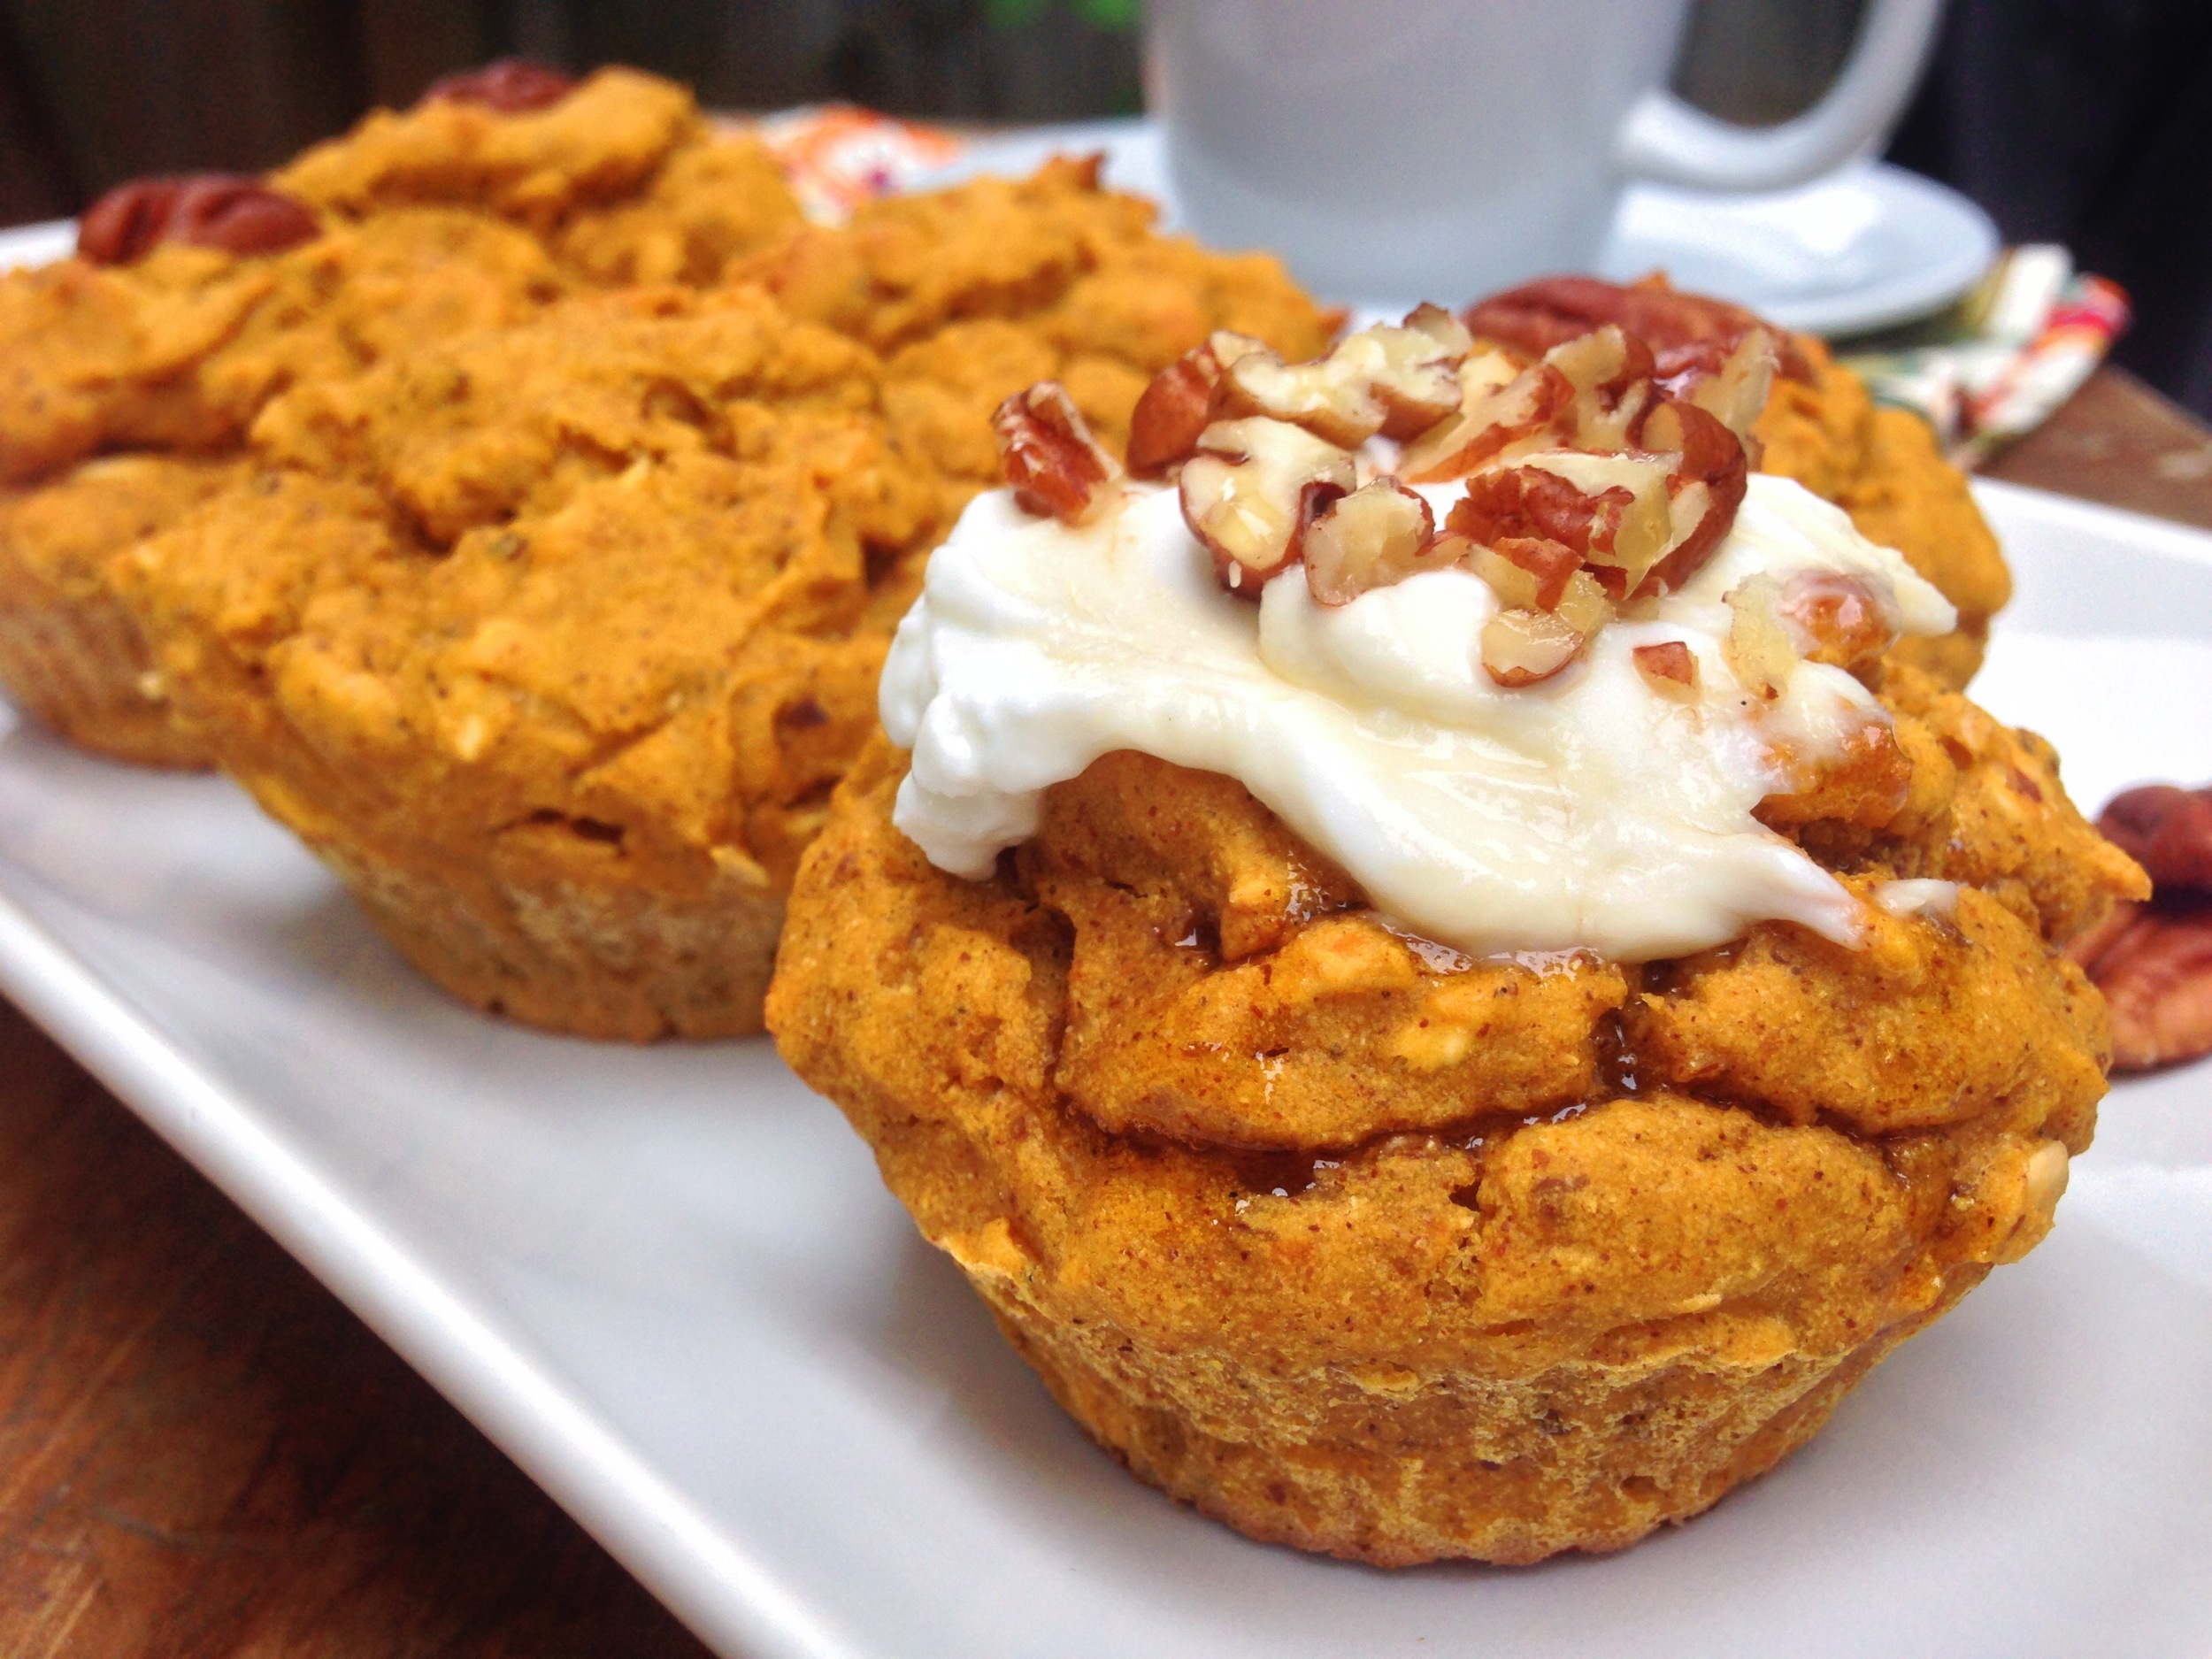 Pumpkin Apple Muffins            2 eggs, room temp        1/2 cup cooked pumpkin puree or canned organic pumpkin        1/3 cup raw honey        1/4 cup unrefined organic coconut oil        1 tsp vanilla        2 1/2 cups, loose not packed almond flour        1/2 tsp baking soda        1/4 tsp sea salt        1/1/2 tsp cinnamon        1/2 tsp nutmeg        1/4 tsp cloves        1/4 tsp ginger      1 chopped, peeled granny smith apple      Preheat the oven to 350'.    Mix the dry ingredients together.    Whip the eggs and add vanilla. Mix in the pumpkin until evenly distributed.    Add the wet ingredients to the dry and mix for 1 minute on medium speed. Add the apples and mix for another 30 seconds.    Prepare your tins with either cupcake liners or grease muffin tin with coconut oil and a light dusting of almond flour. Fill the liners above the 3/4 line and stick in the oven for up to 20 minutes or until brown on the outside and a toothpick comes out clean. This makes approx 12 muffins.    Enjoy your breakfast!